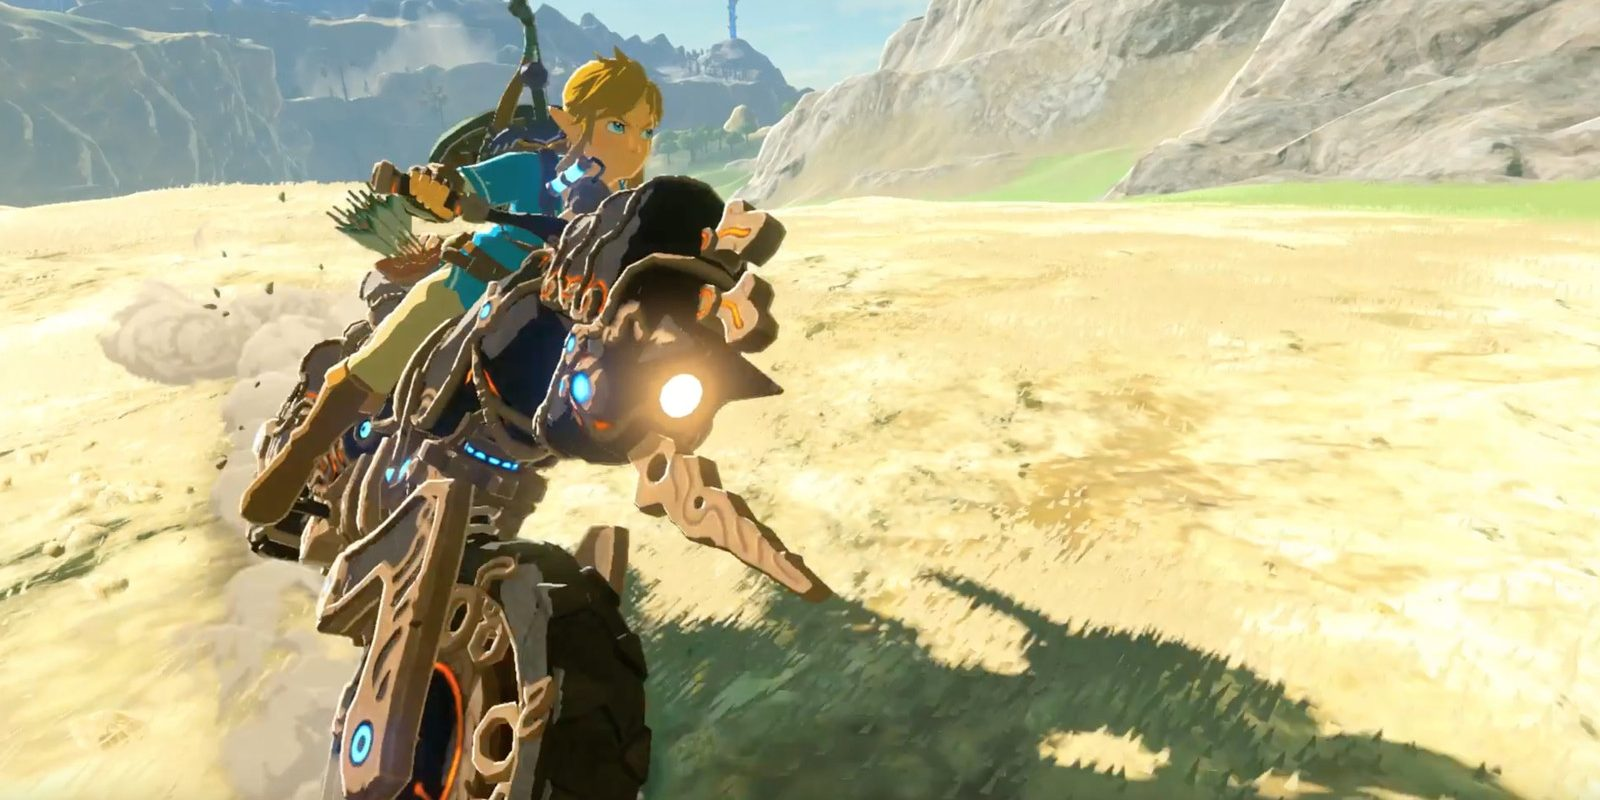 Zelda: Breath of the Wild Story DLC Available Now